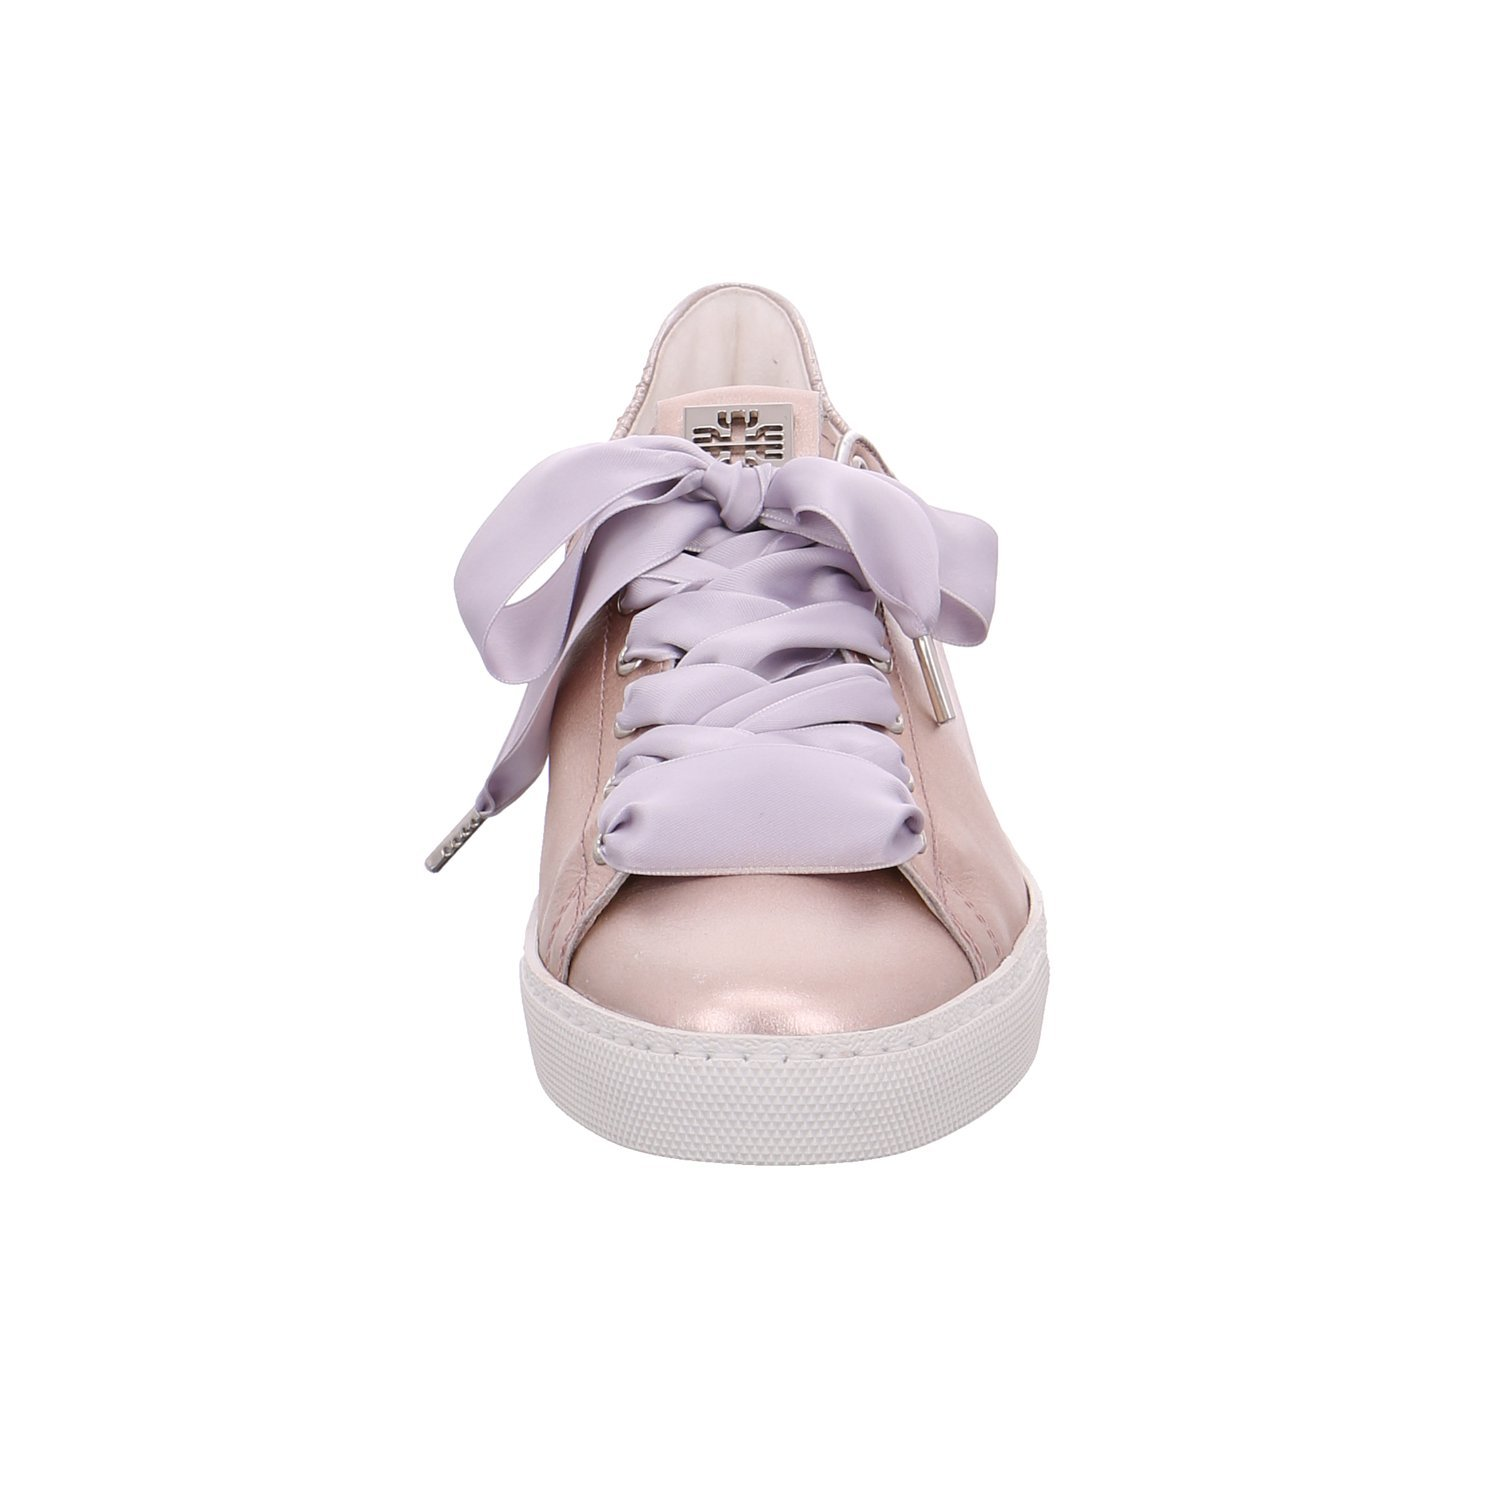 0f13fb48567b Women s HÖGL 3-100351 Rose Gold Swarovski Leather Sneakers HO 4   Amazon.co.uk  Shoes   Bags